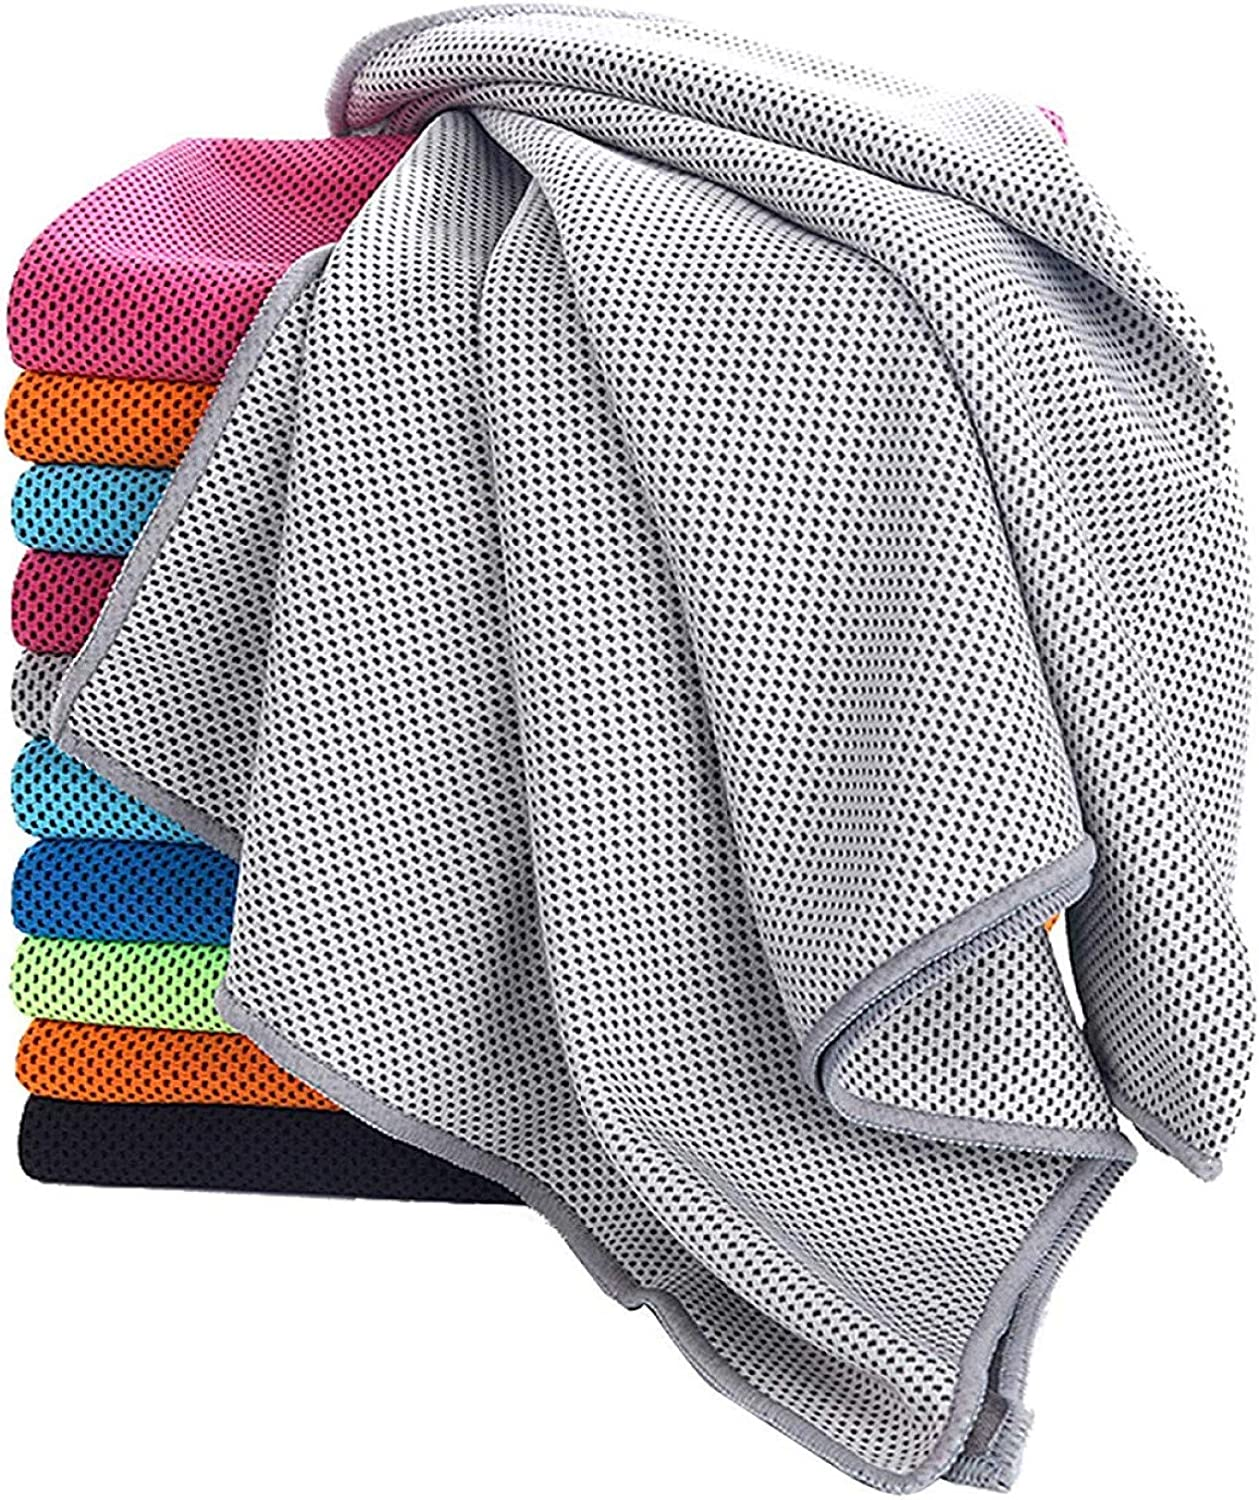 Instant Cooling Towel For Neck, Summer Cooling Towel For Athletes, Super Absorbent Snap Ice Towel, Soft Chilly Towel for Yoga, Hiking, Travel, Gym, Fitness, Pilates, Running, Outdoor Activities